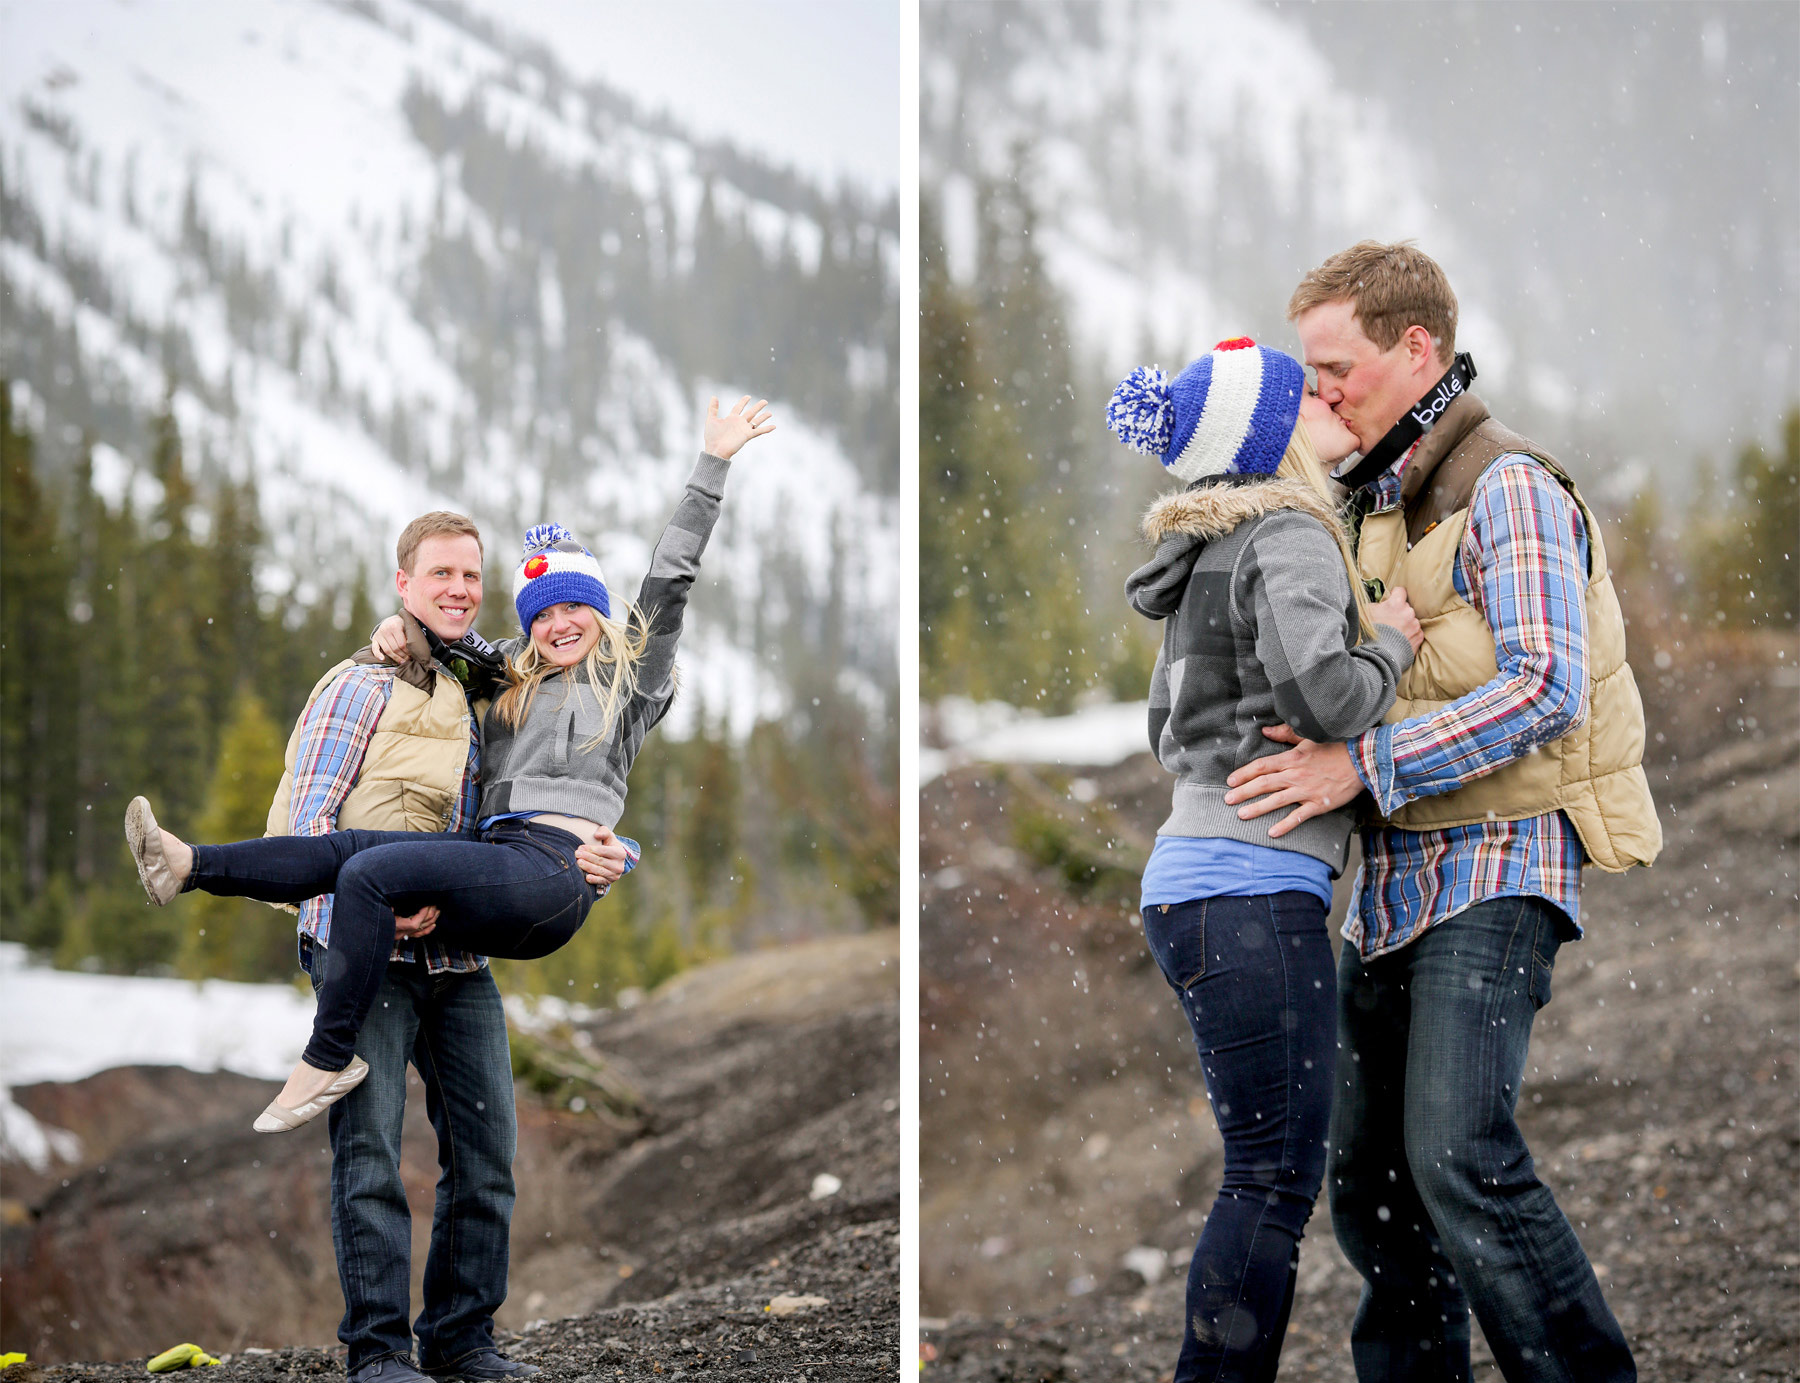 02-Denver-Colorado-Vail-Engagement-Photography-by-Vick-Photography-Winter-Engagement-Rustic-Mountains-Lucy-&-Matt.jpg